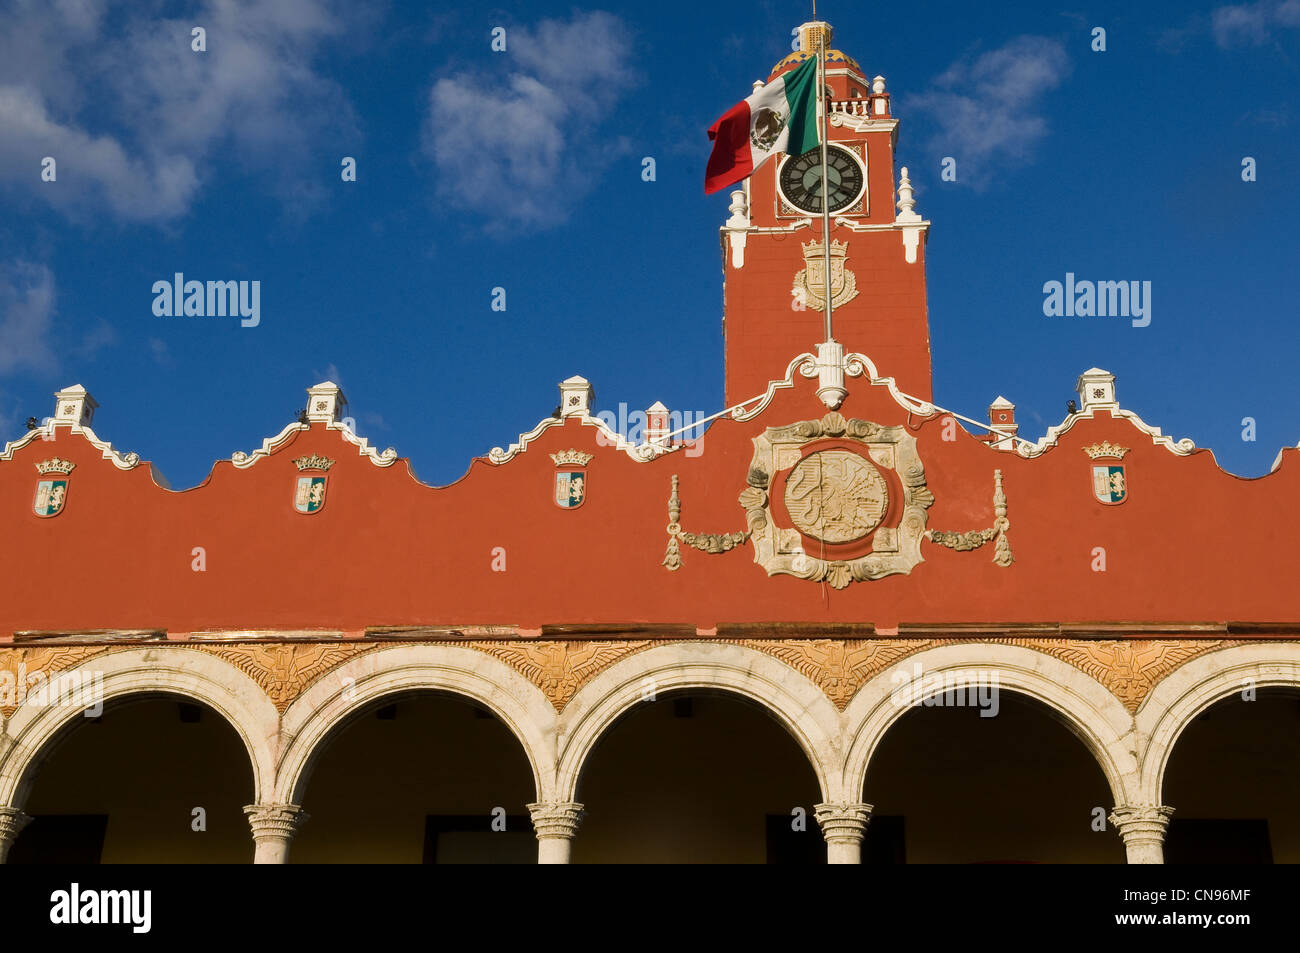 Mexico, Yucatan state, Merida, old center listed as World Heritage by UNESCO, old city hall on the zocalo - Stock Image